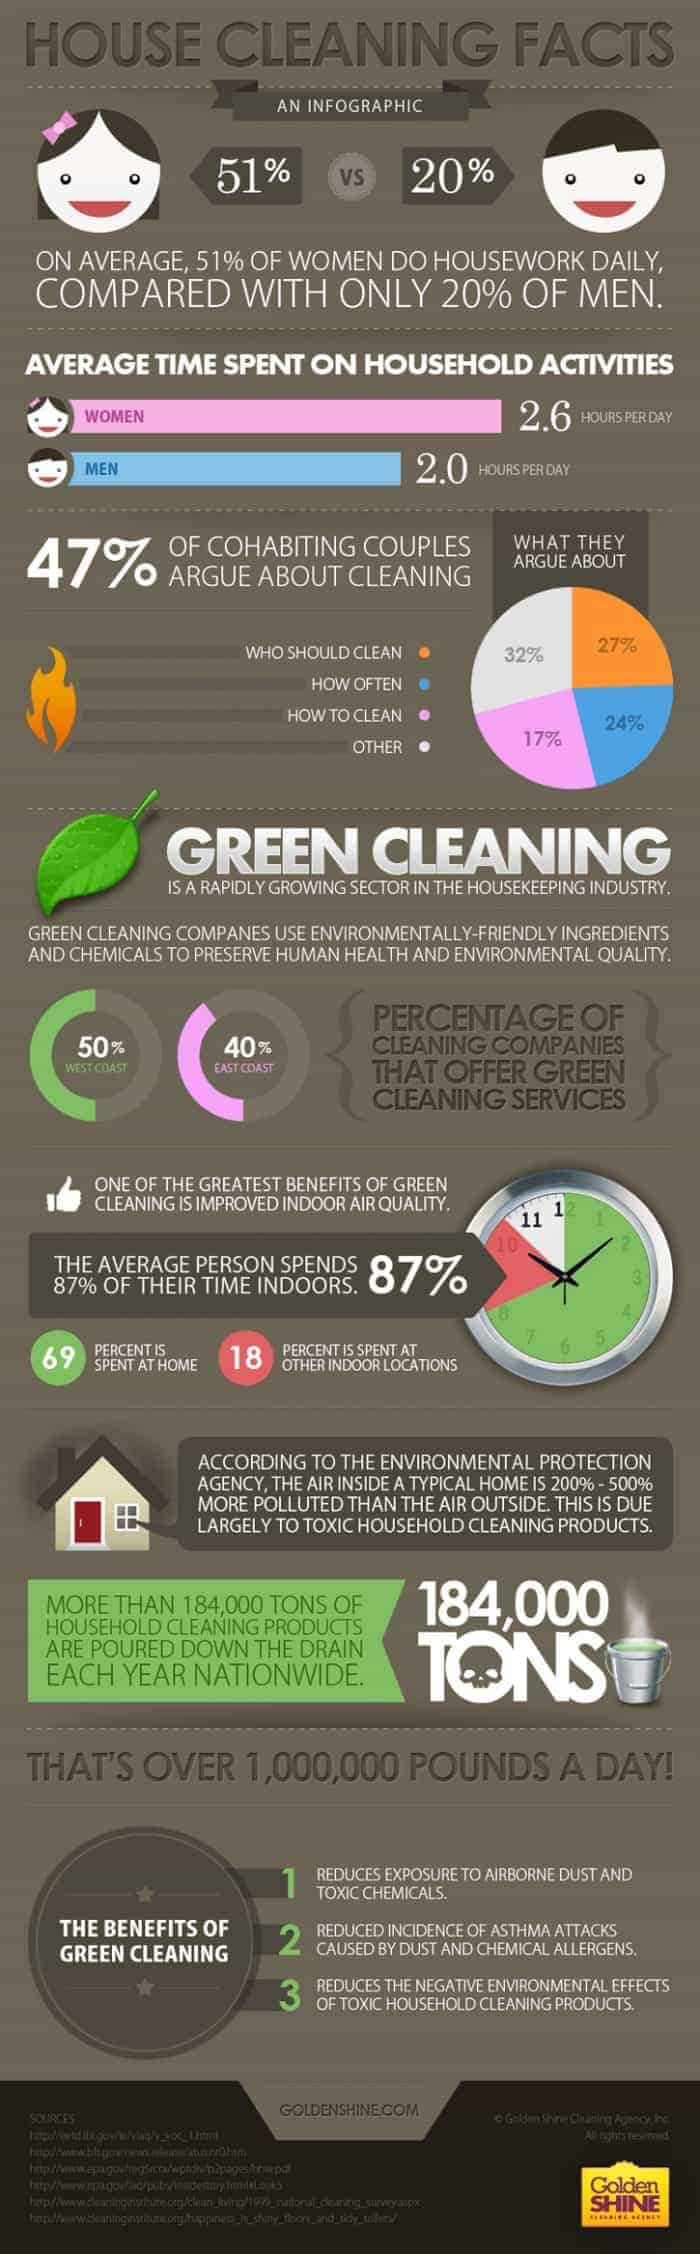 house-cleaning-facts